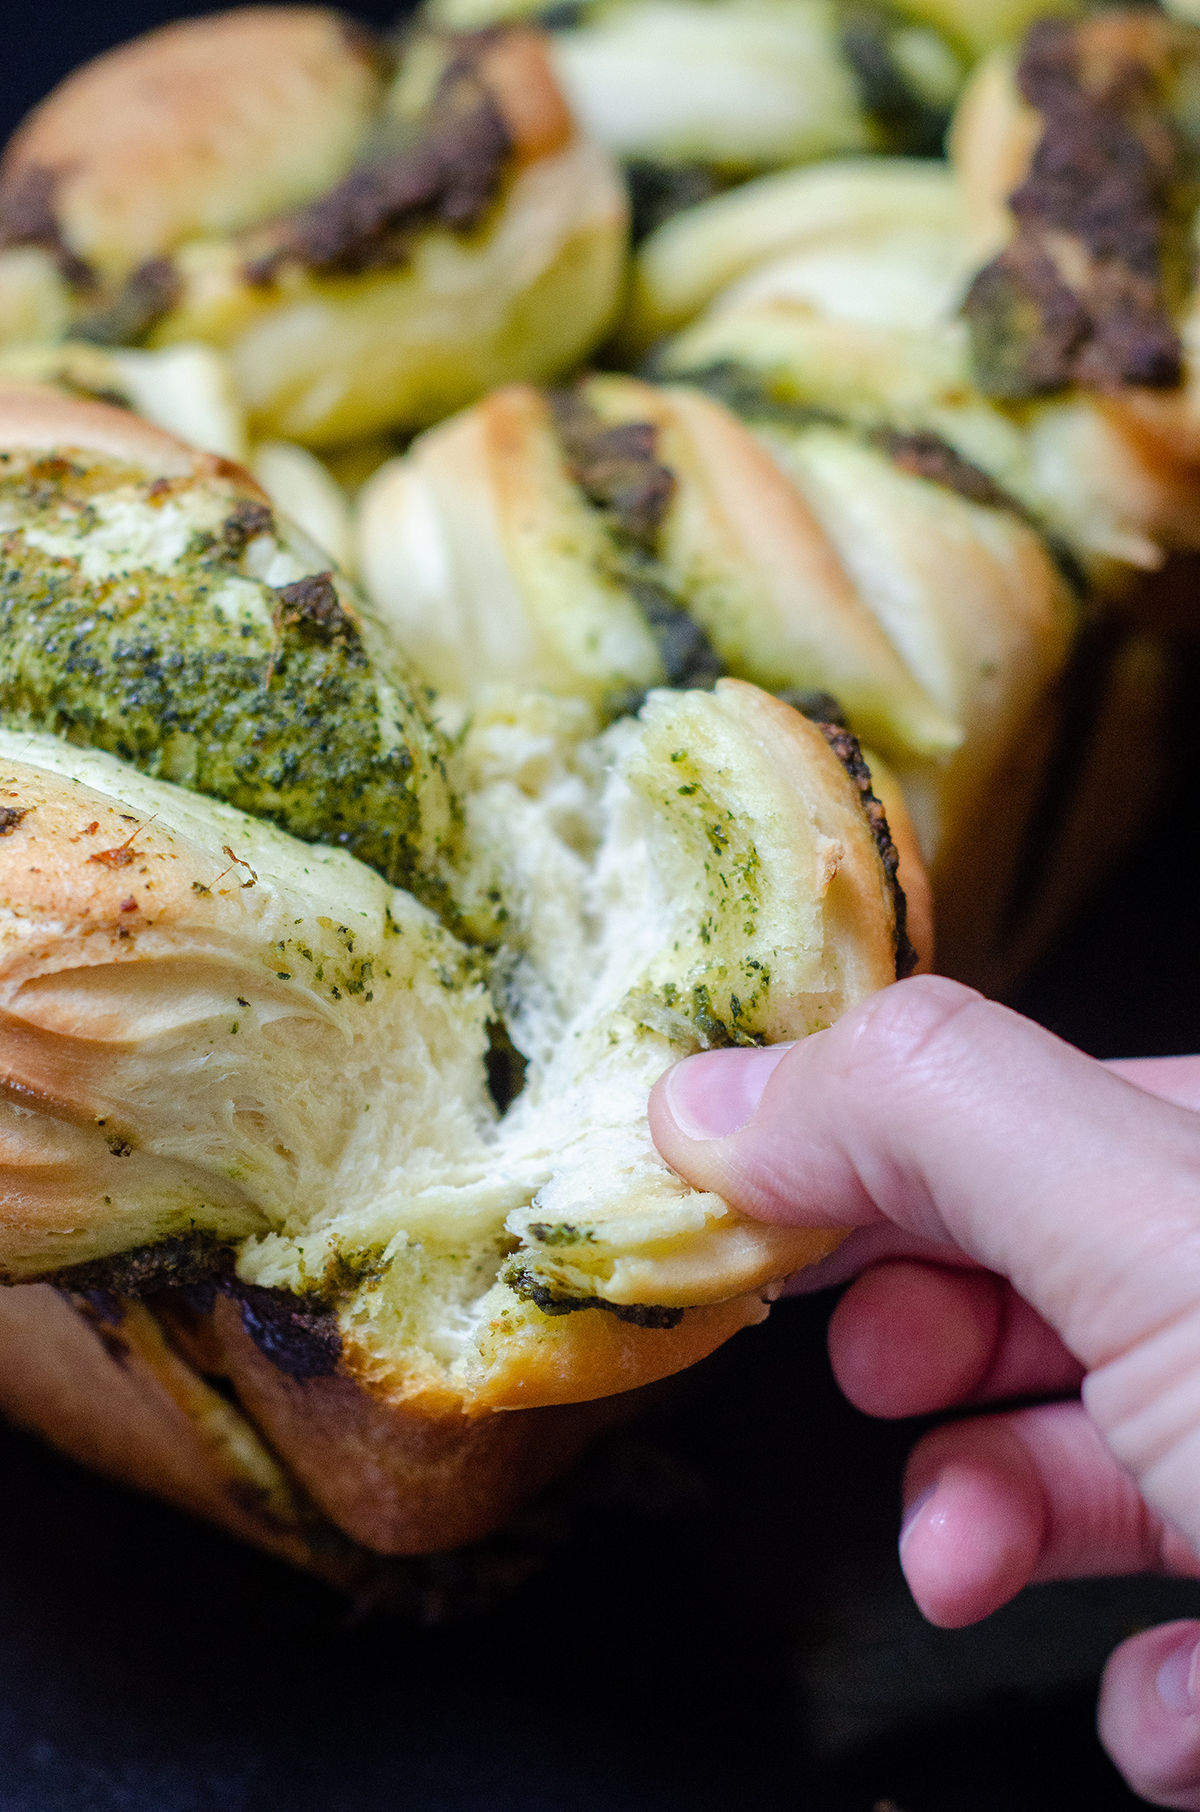 pesto pull-apart bread being pulled apart by a hand